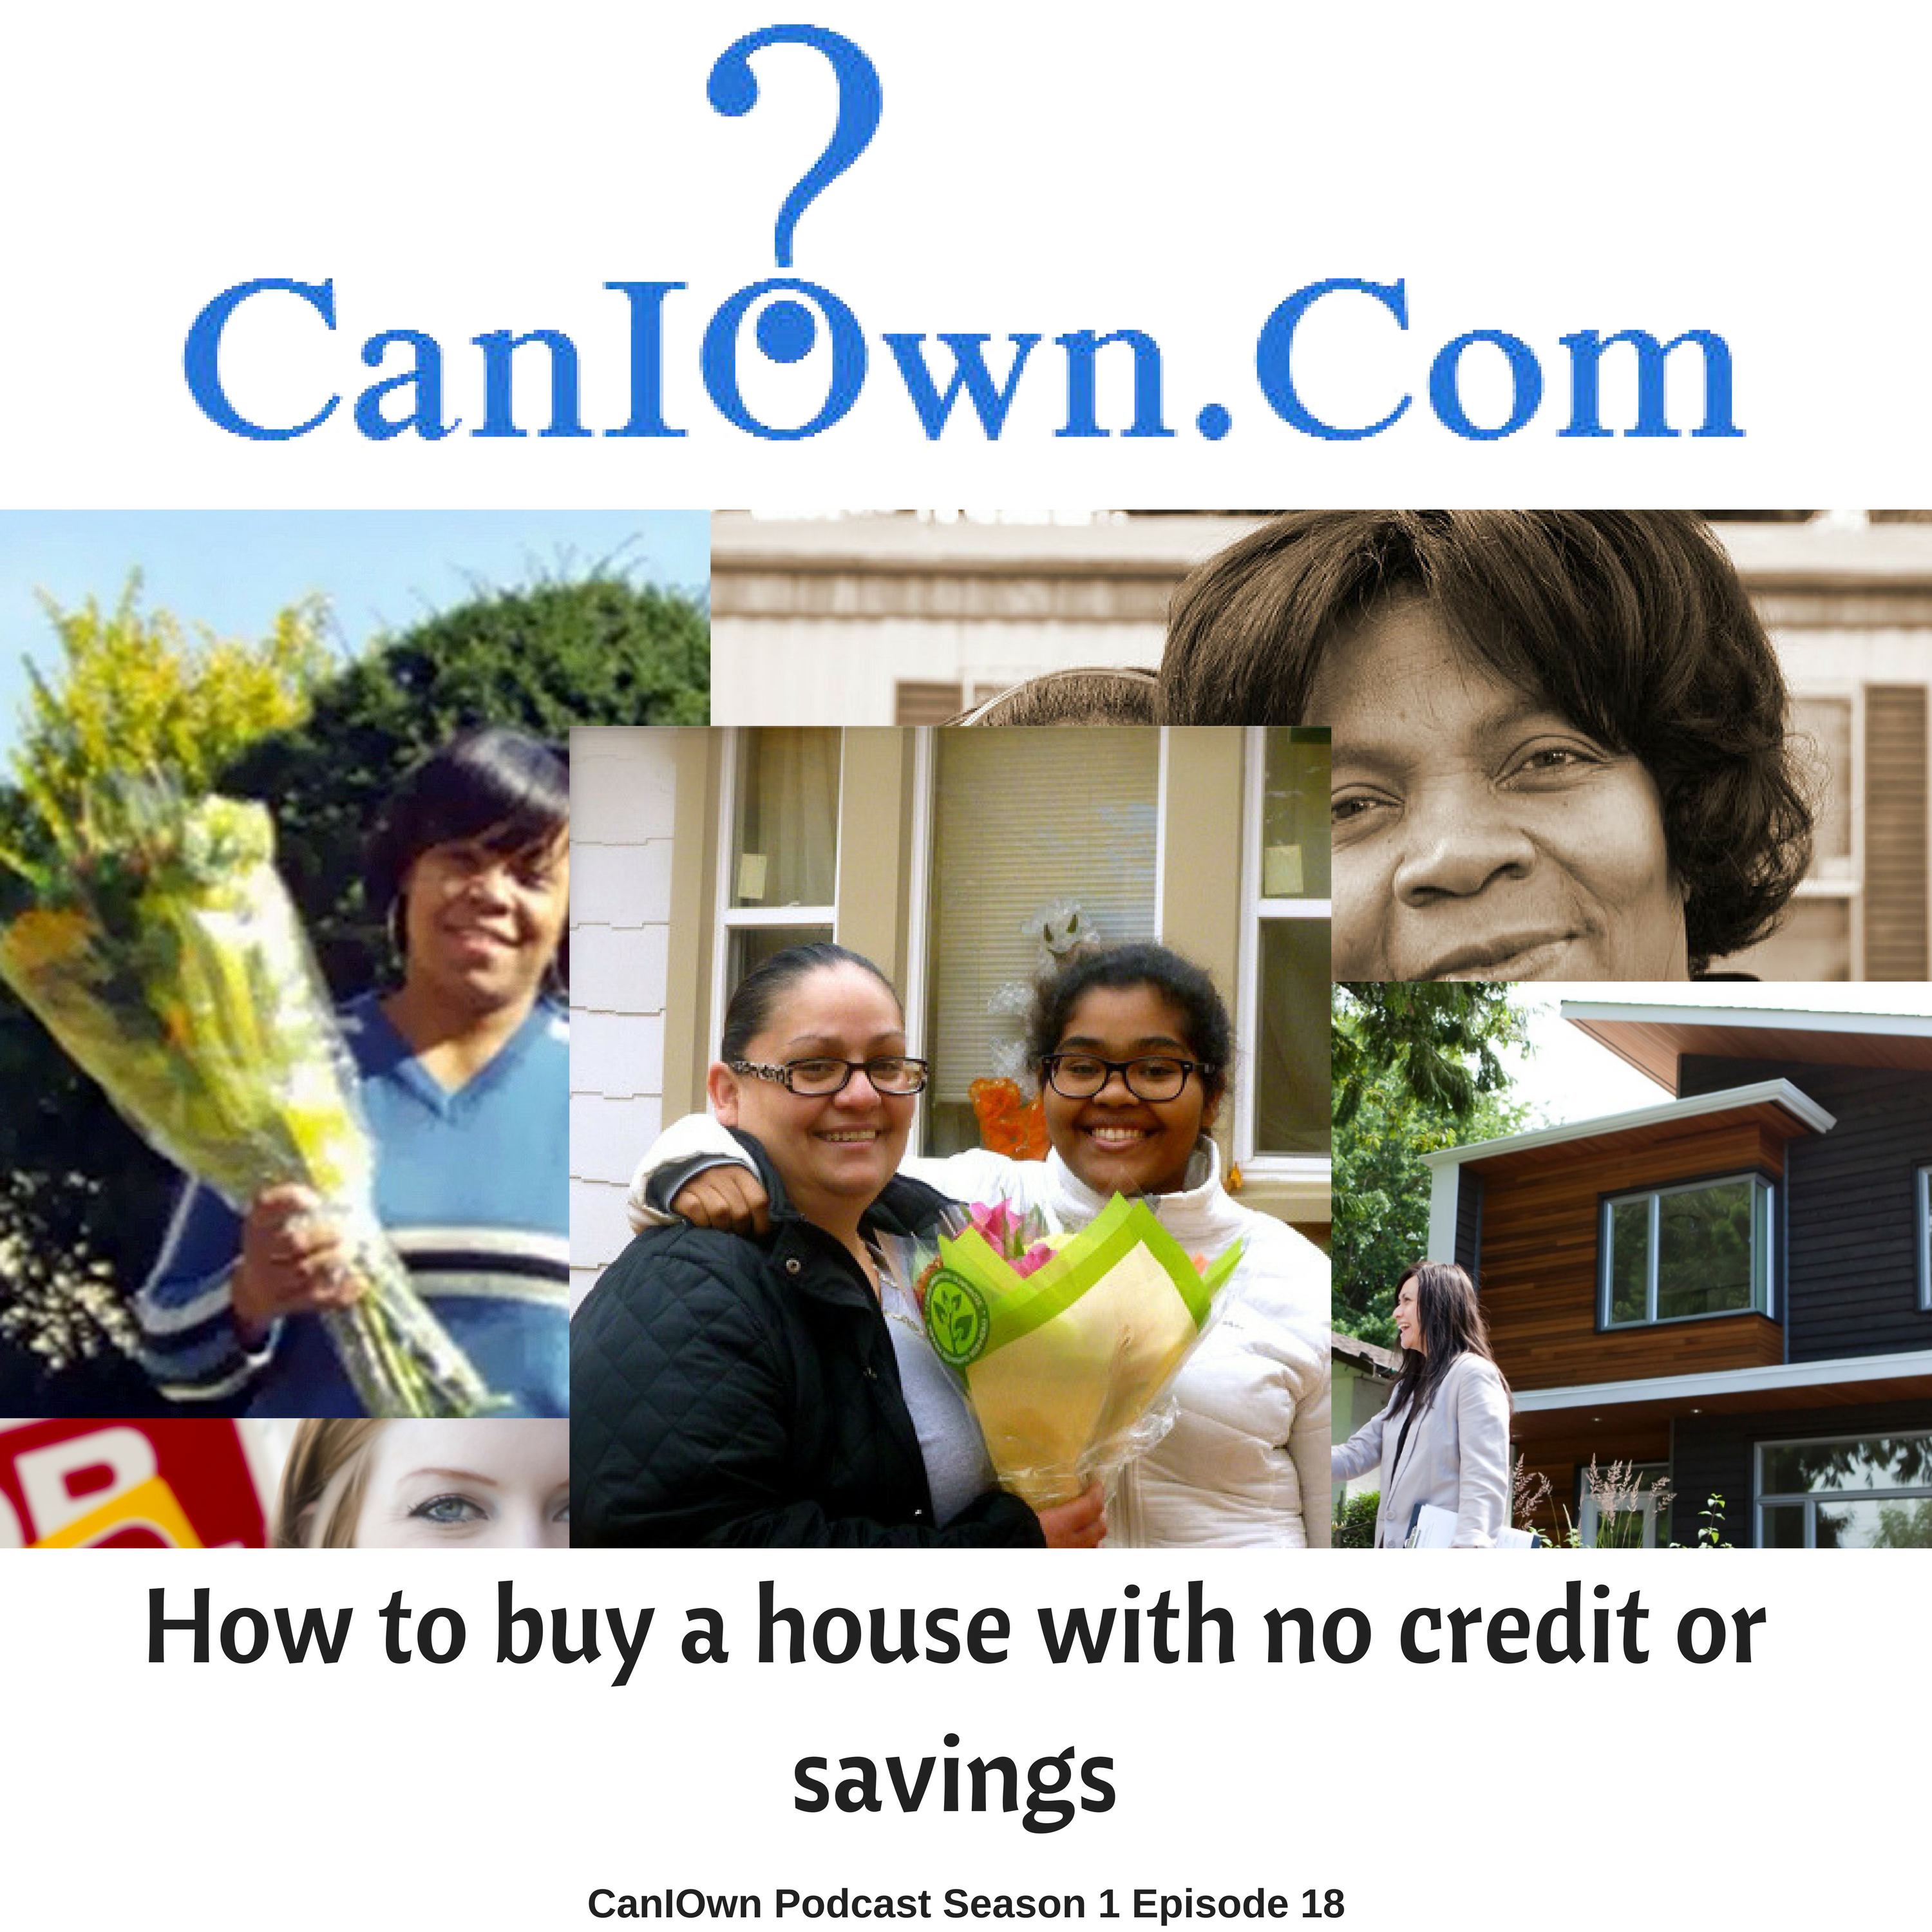 Marvelous CanIOwn.com